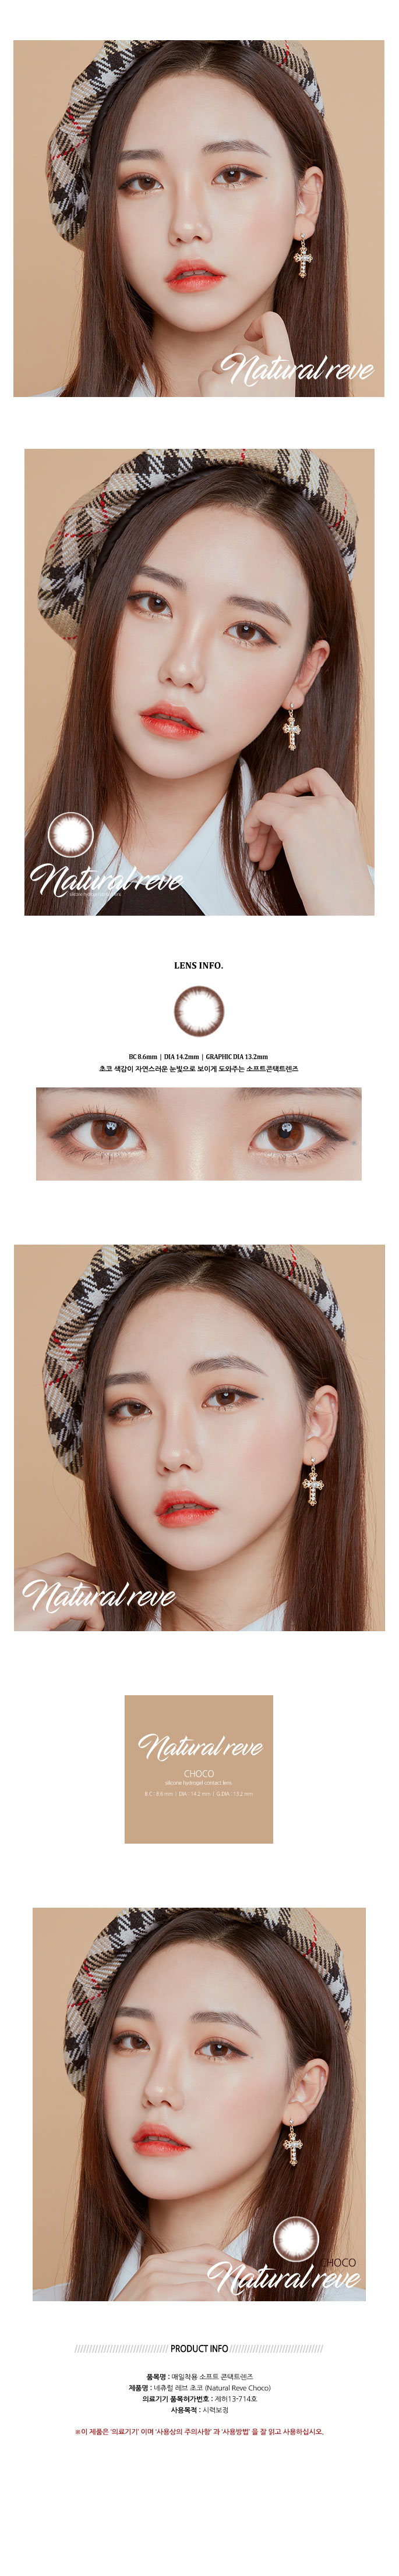 natural-reve-choco-circle-lenses.jpg